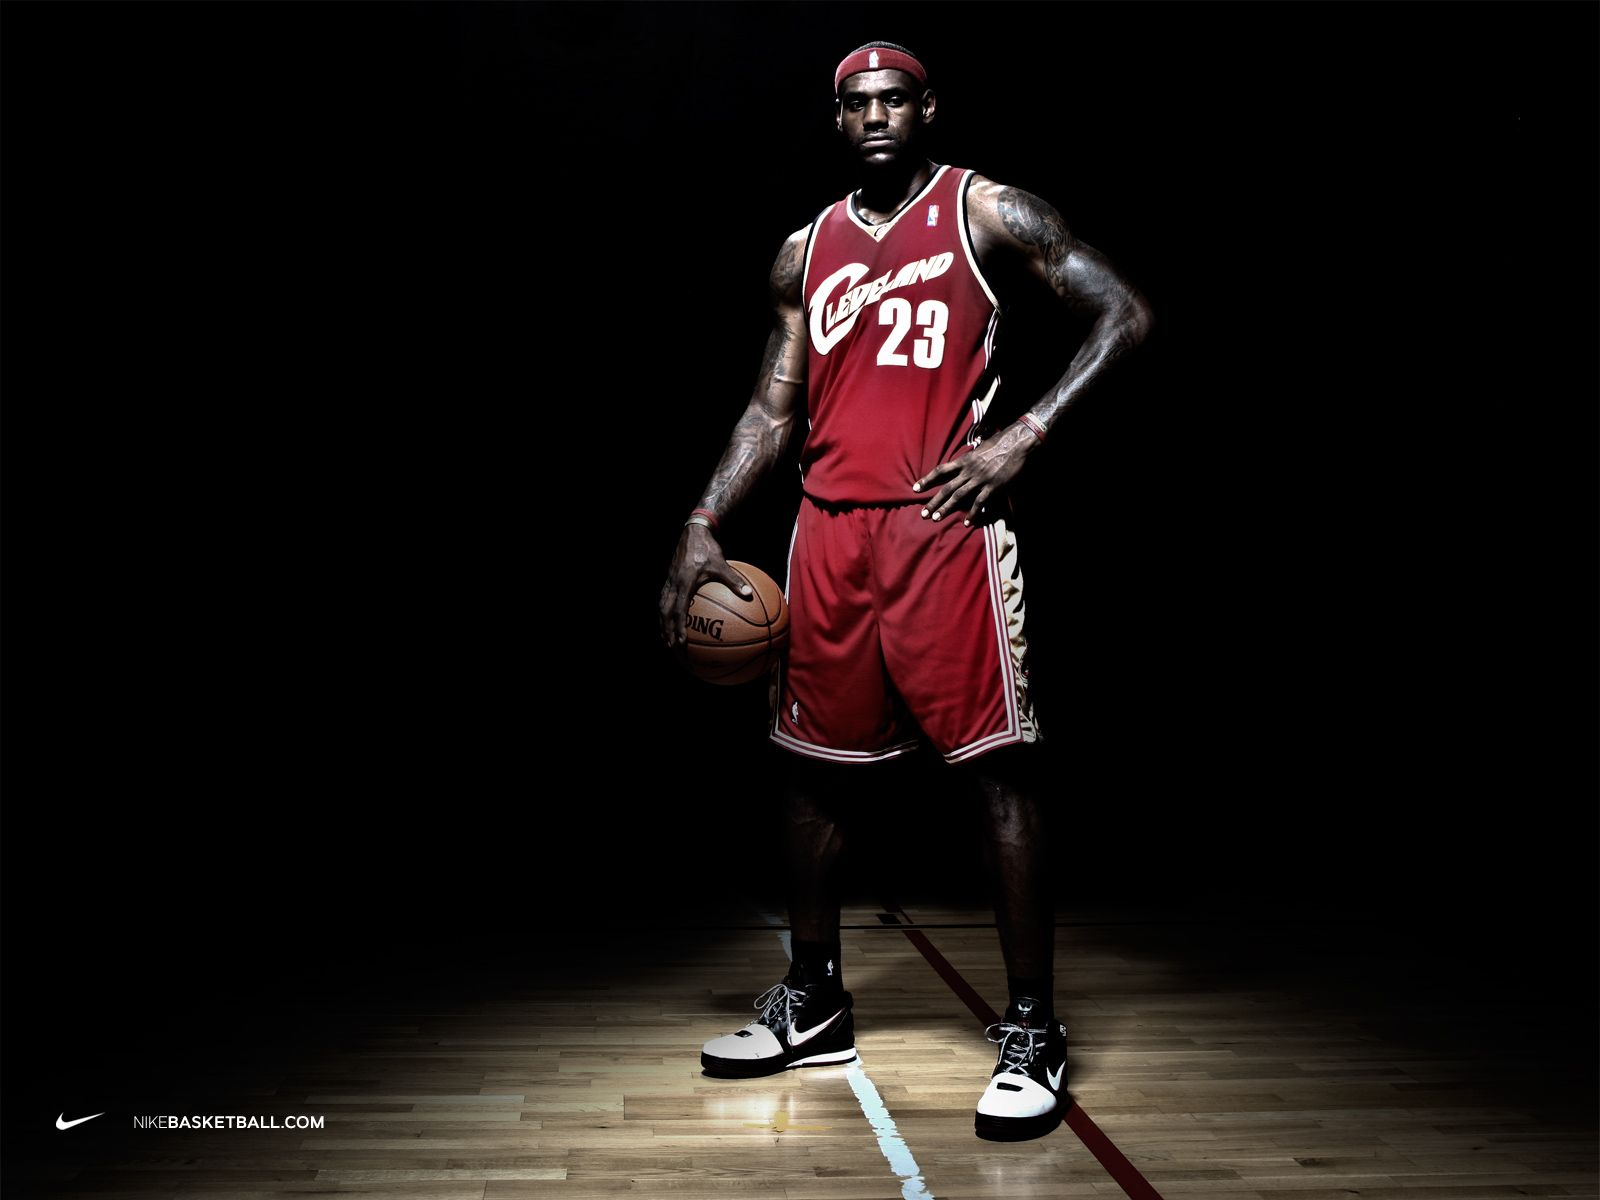 lebron james shoes advertisement - Google zoeken | persoon ...